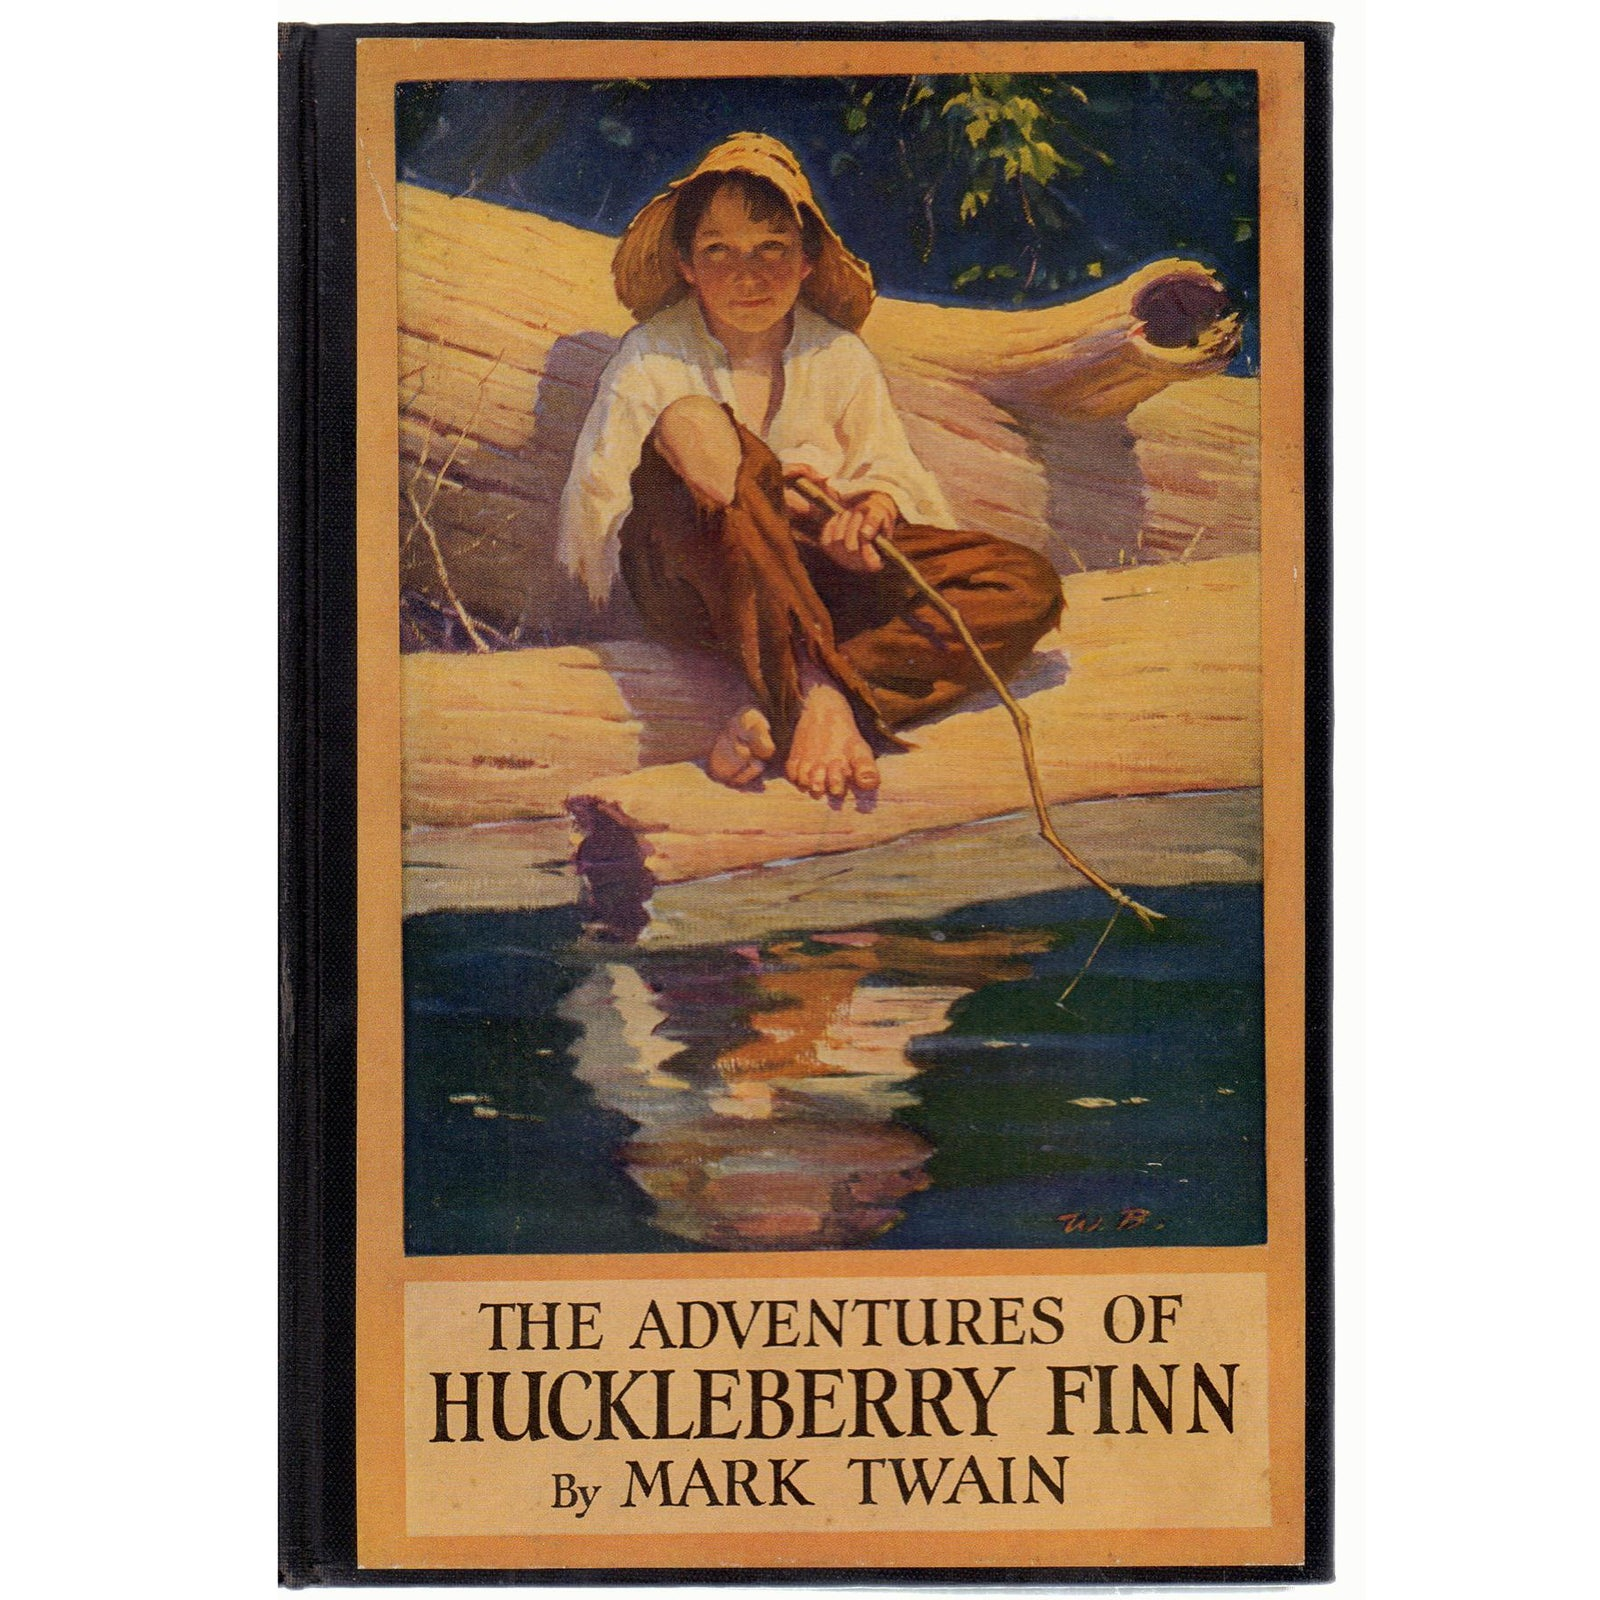 huckleberry finn land vs water The adventures of huckleberry finn: river vs land in the novel adventures of huckleberry finn, mark twain throws the curious yet innocent mind of huck finn out into a very hypocritical, judgmental, and hostile world, yet huck has one escape--the mississippi river constantly flowing nearby.